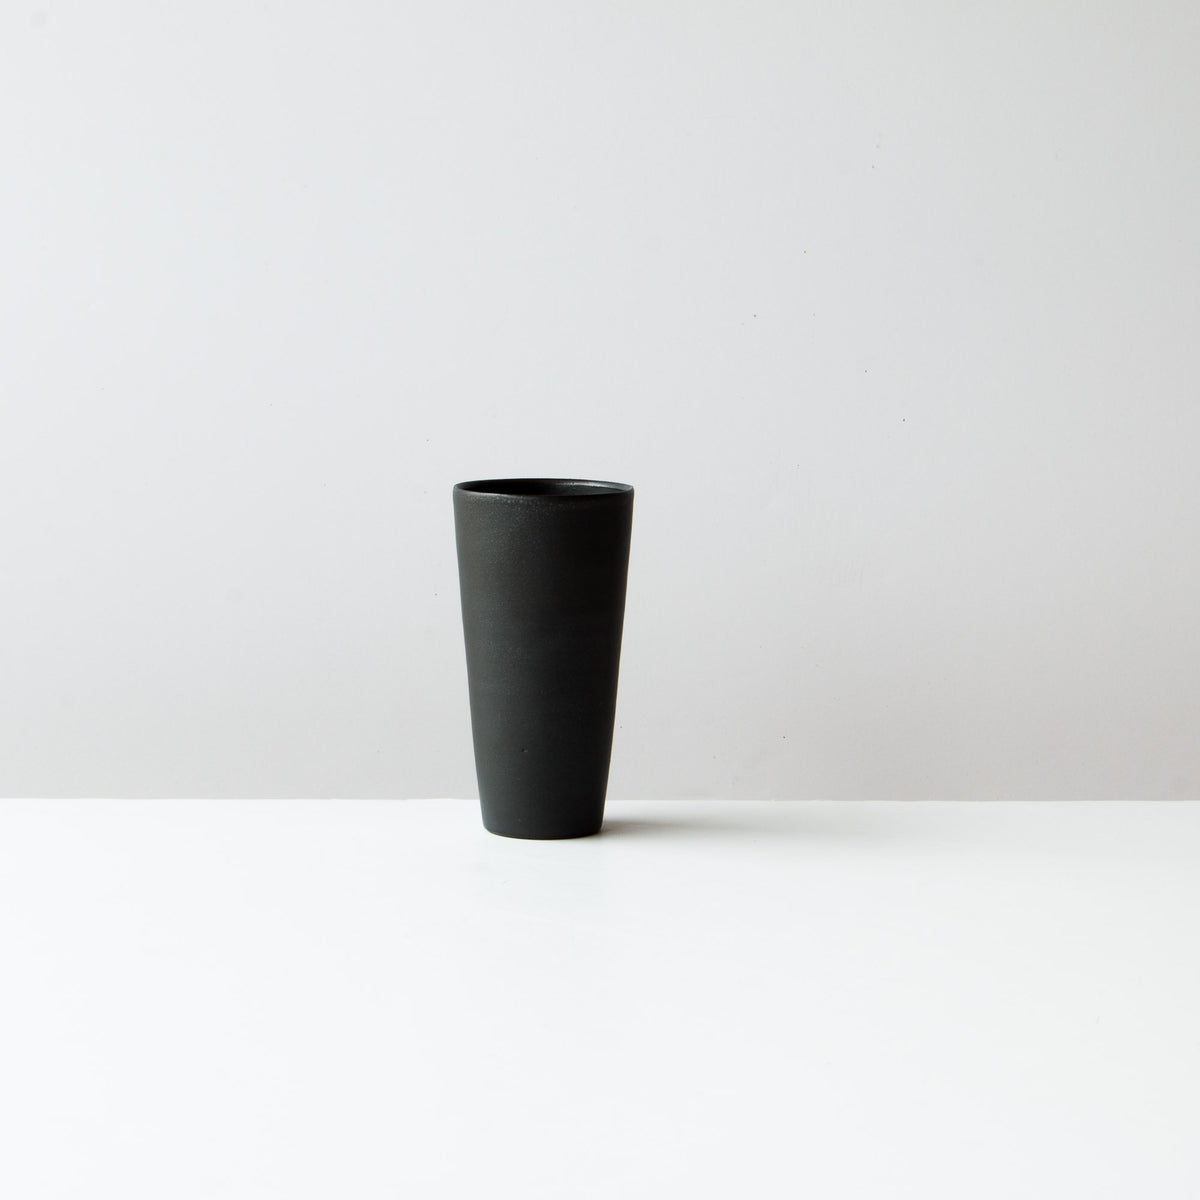 Black Colour - Handmade Tall Ceramic Tumbler - Sold by Chic & Basta